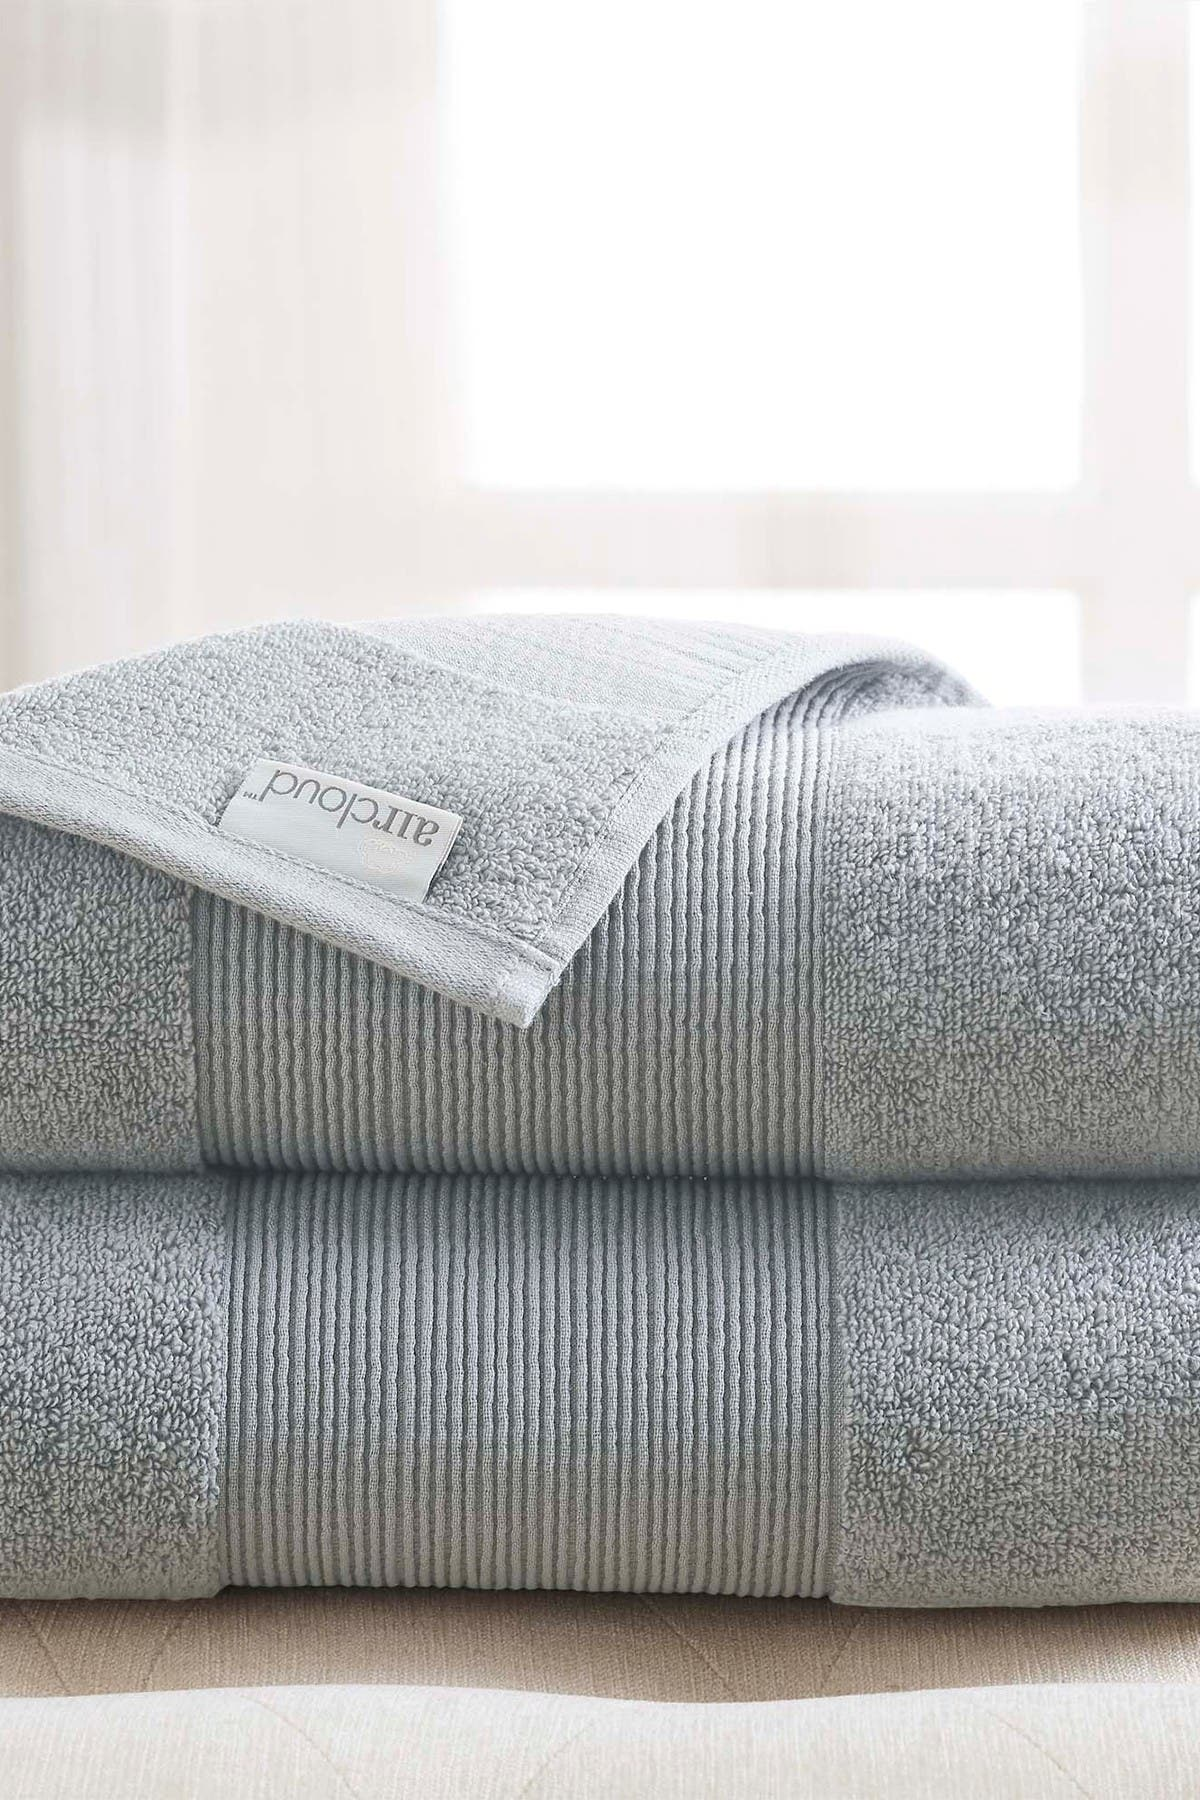 Image of Modern Threads Air Cloud Oversized Bath Sheet - Set of 2 - Soft Gray